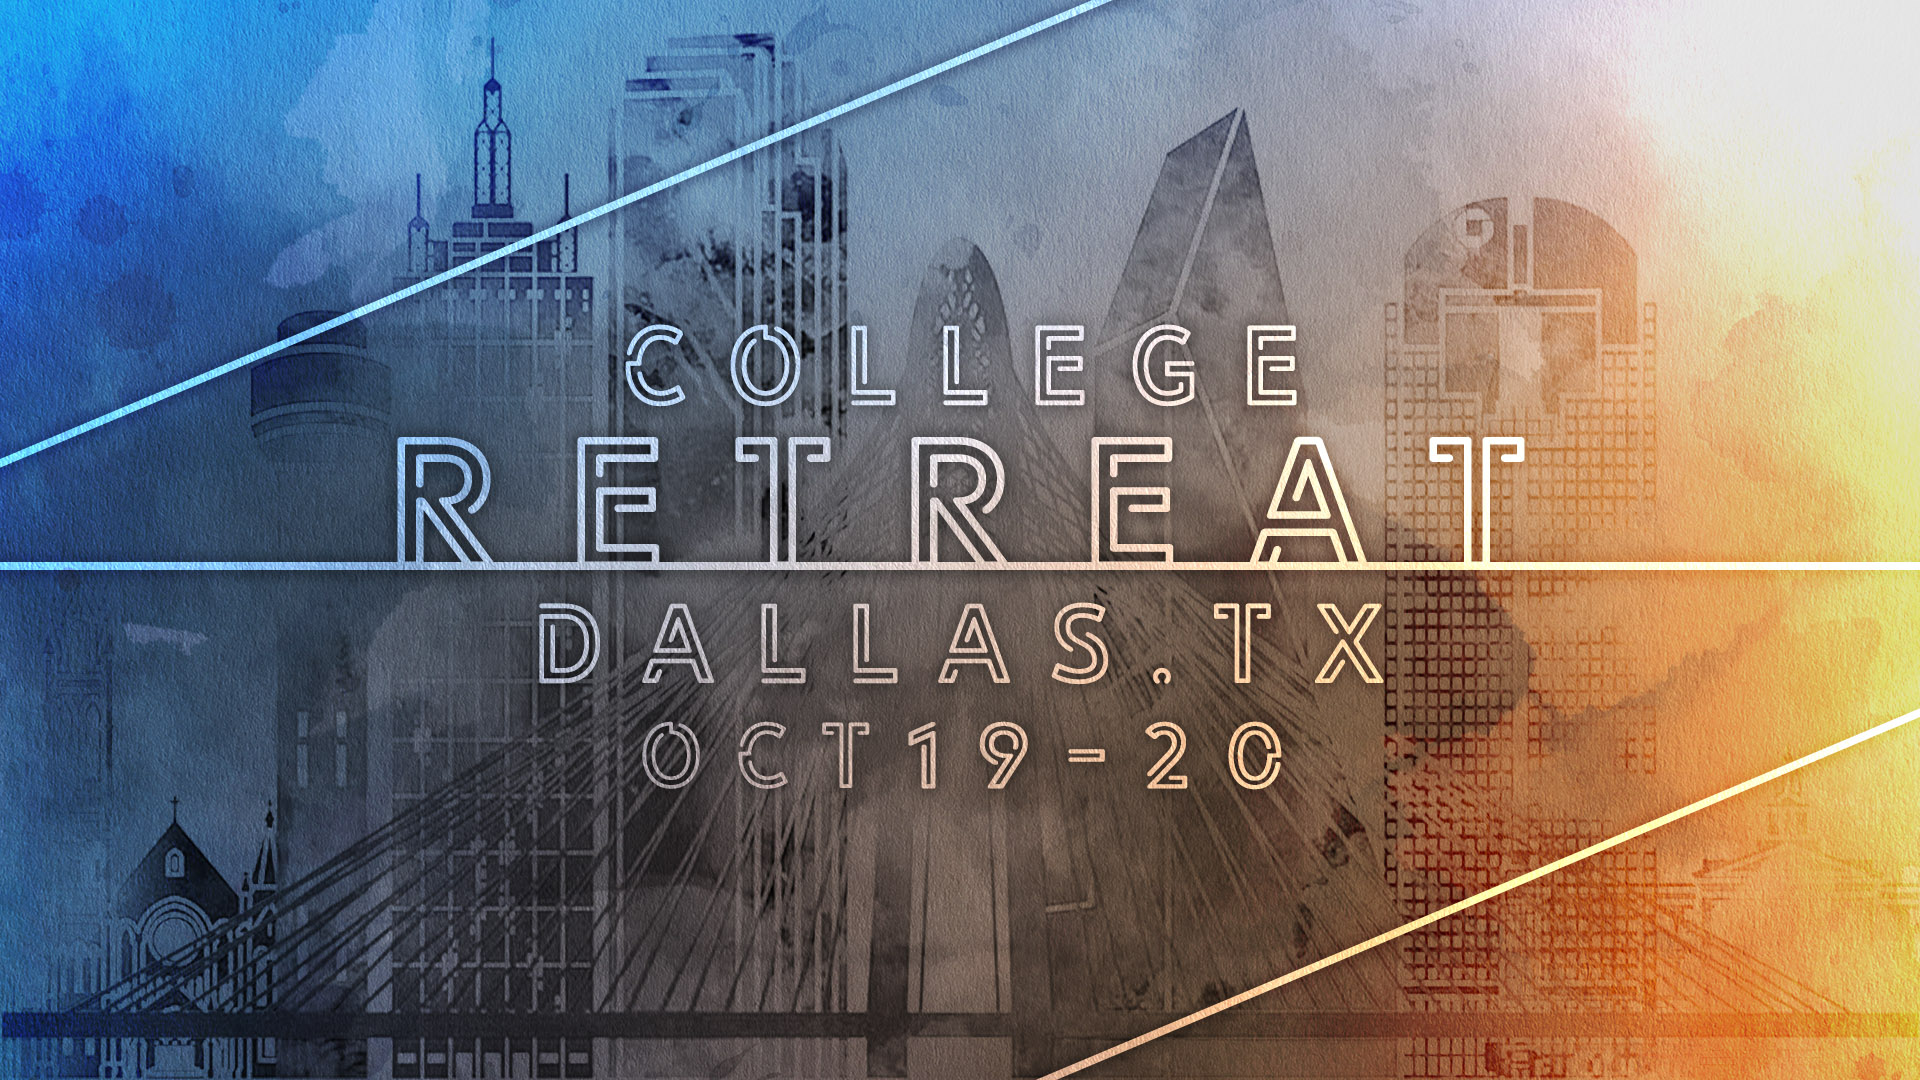 CollegeRetreat_Fall18_Graphic.jpg